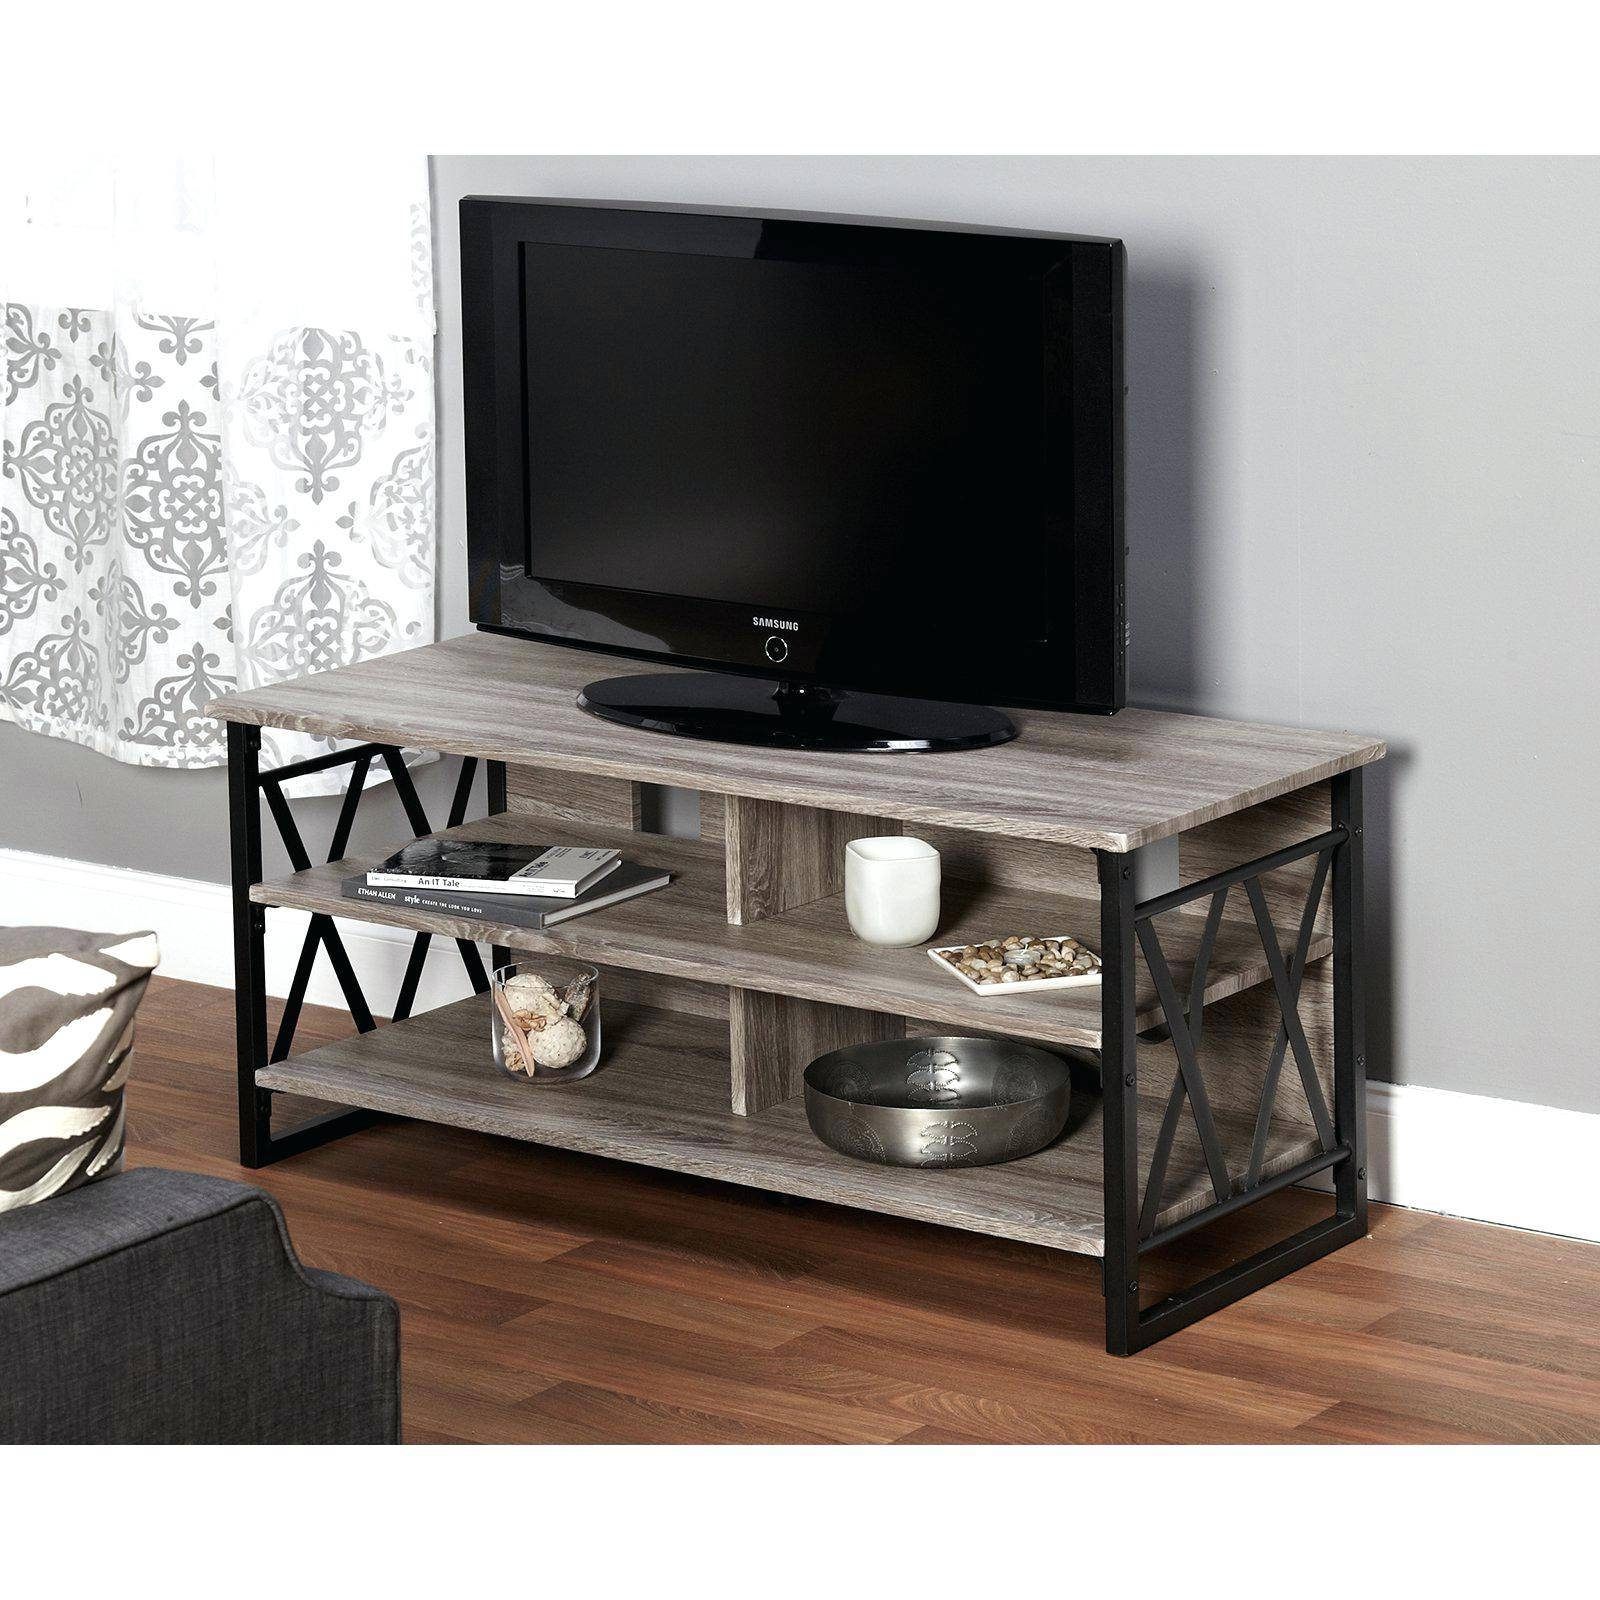 Tv Stand : Amazing Techlink Echo Tv Stand Techlink Echo Tv Stand with Ovid White Tv Stand (Image 7 of 15)